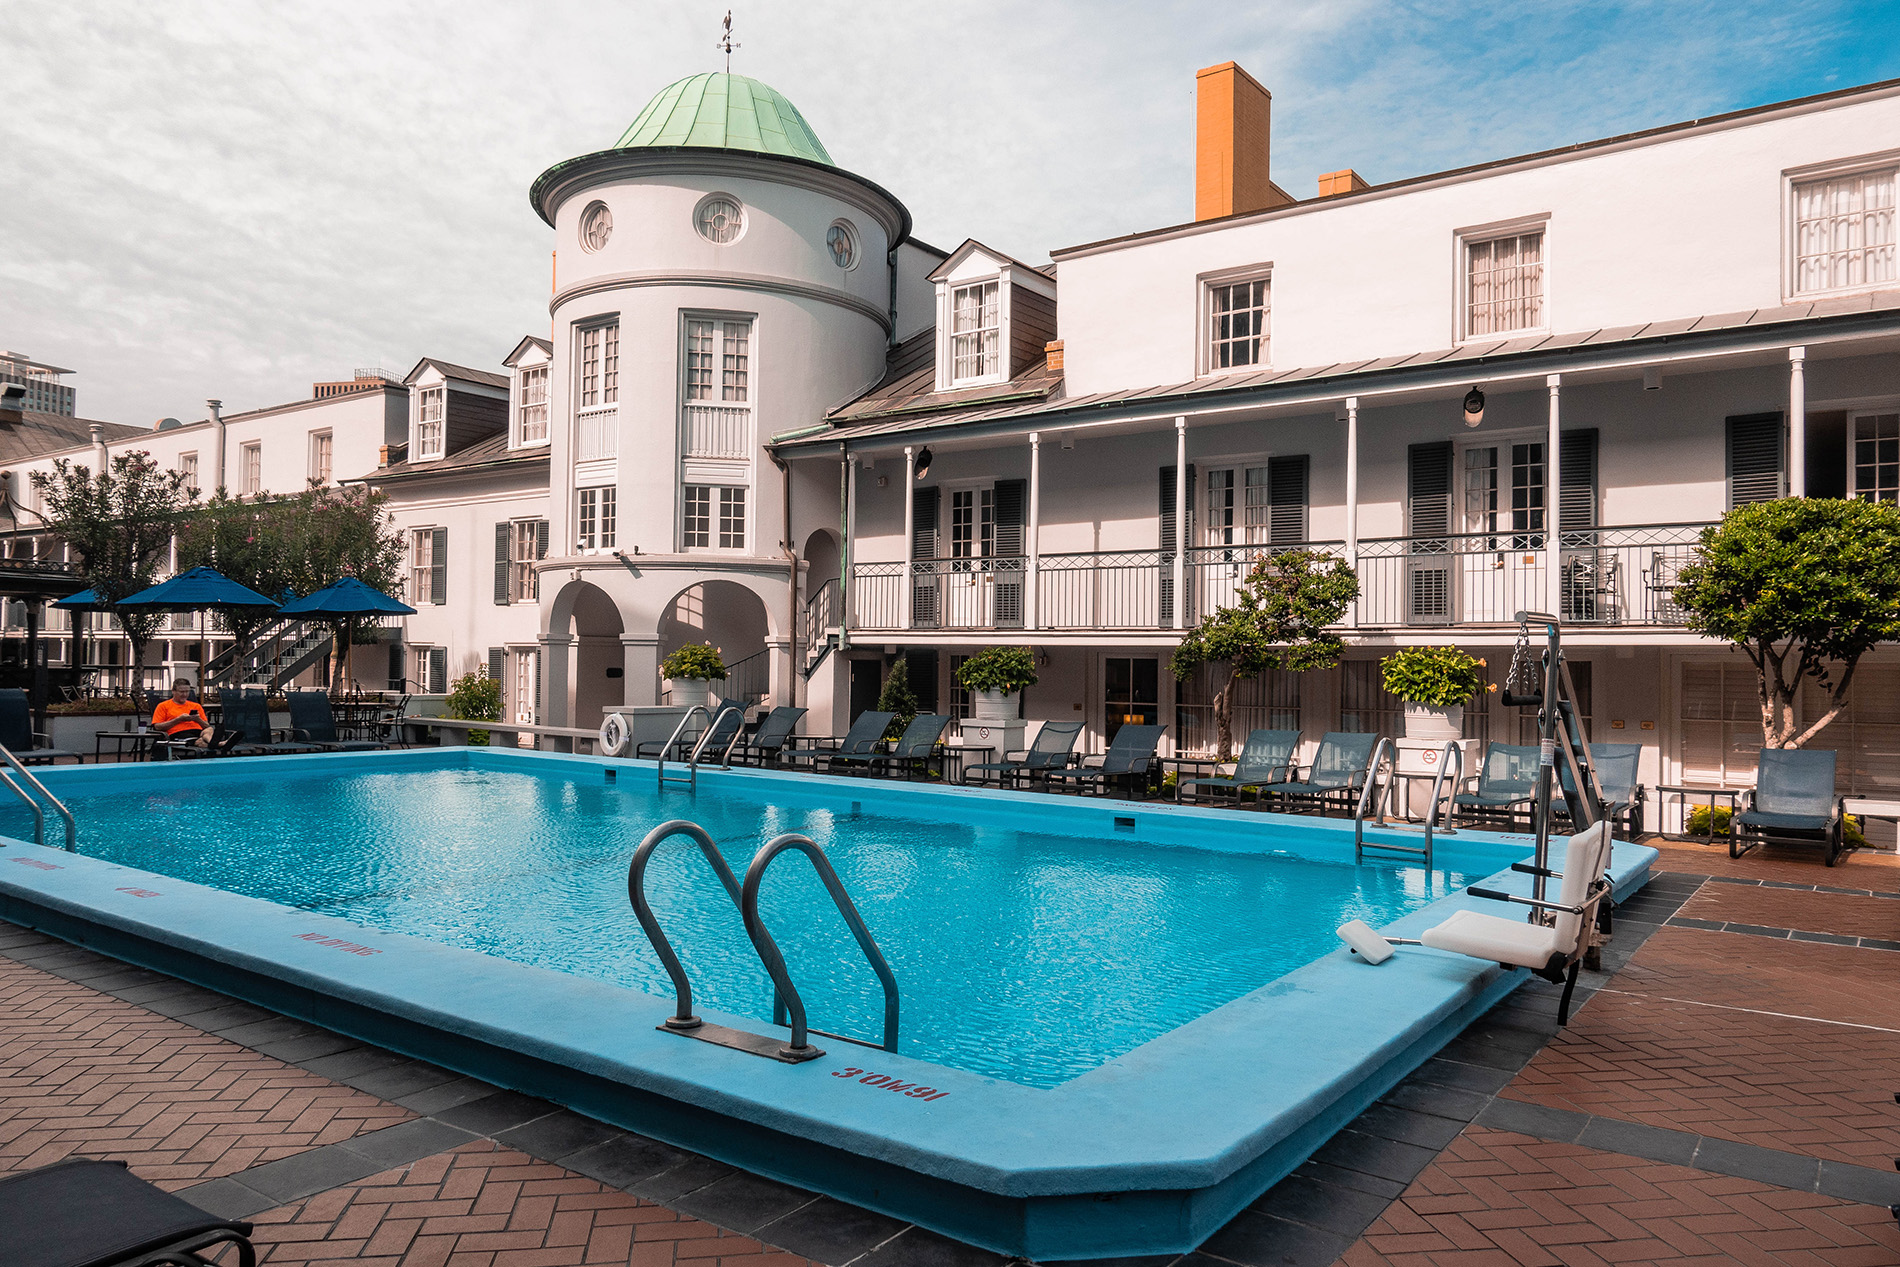 royal-sonesta-new-orleans-amazing-pool-view-hotel-luxury.jpg